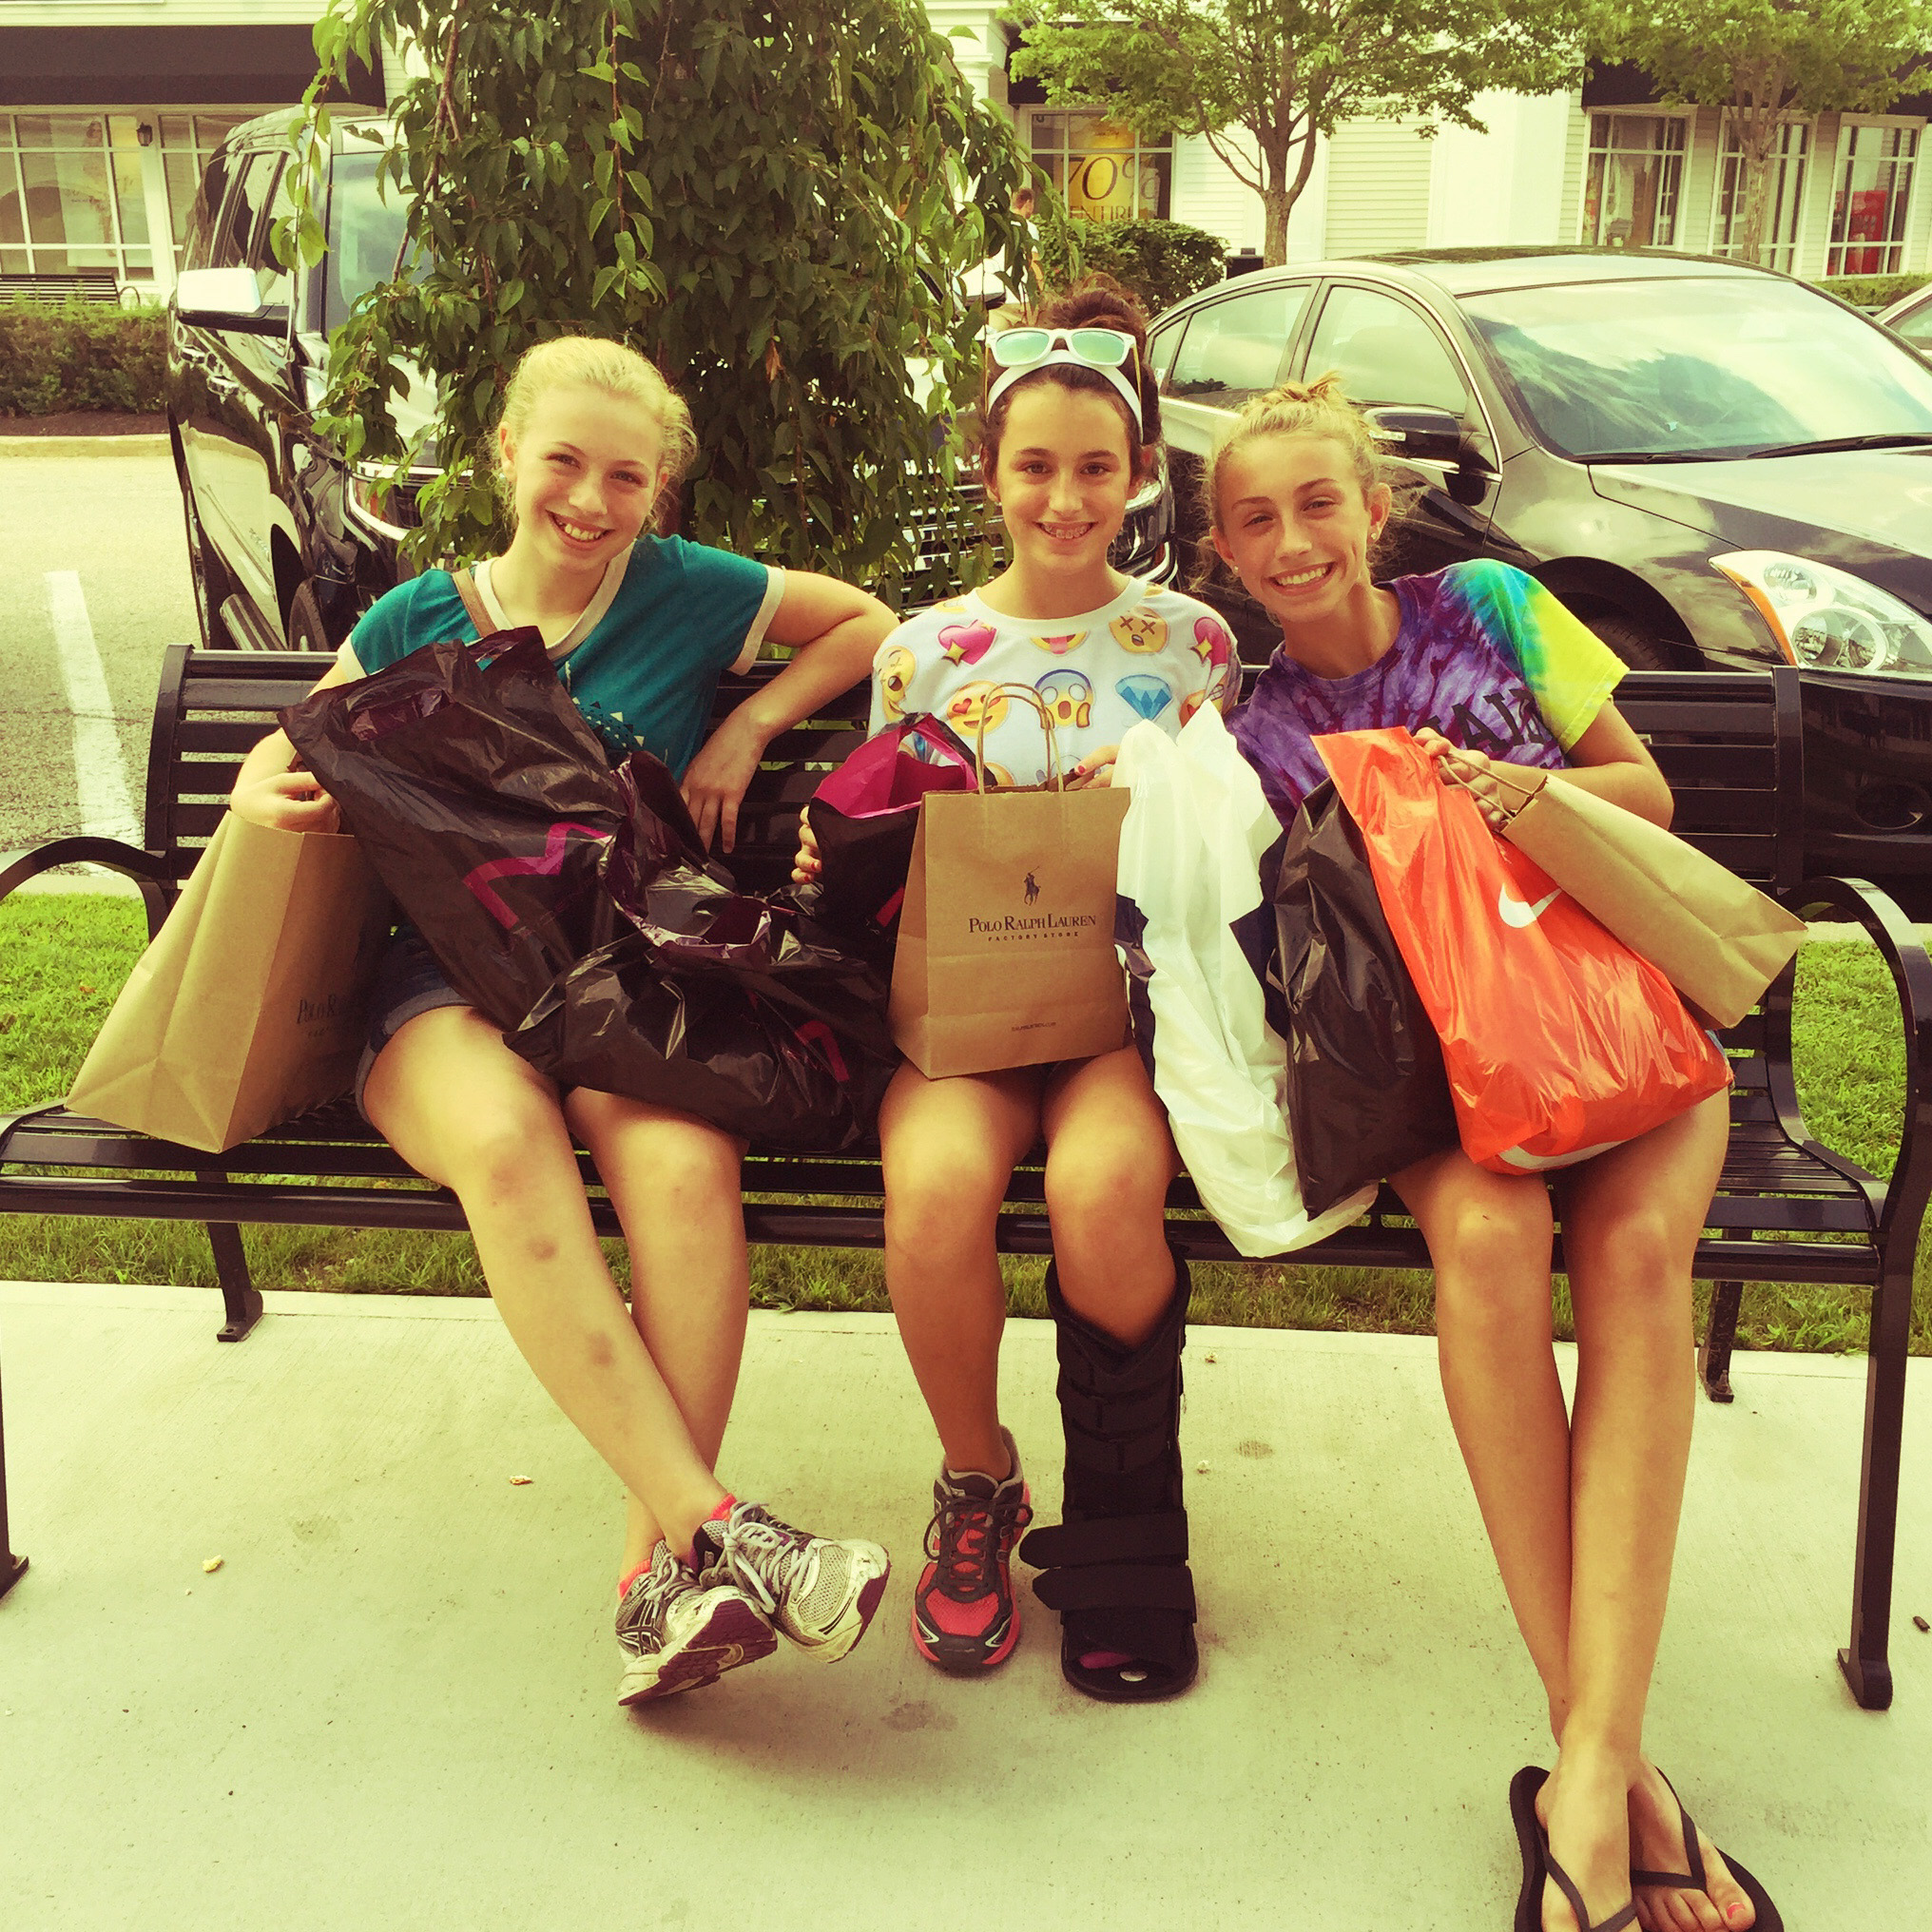 Three teenage girls sitting on a park bench with all of their shopping bags and new purchases prominently displaying brands such as Ralph Lauren and Nike.